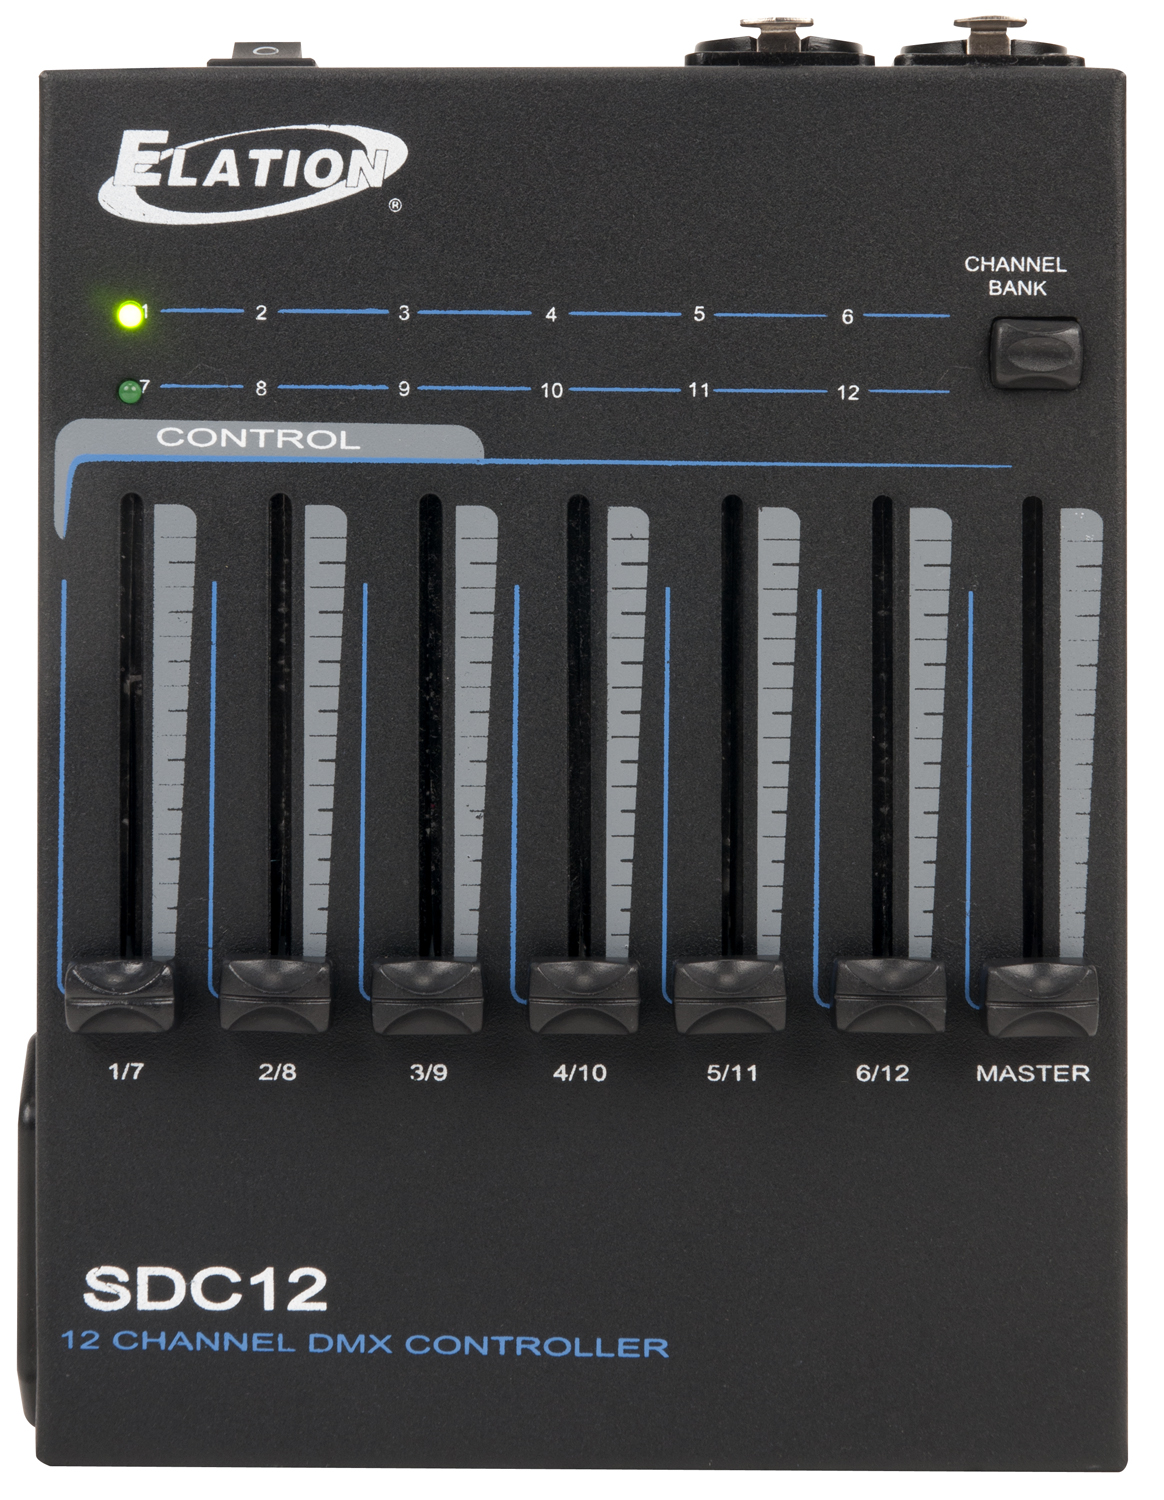 Elation SDC12 Battery Powered Portable Handheld DMX 12-Channel Controller - Limited Quanities!